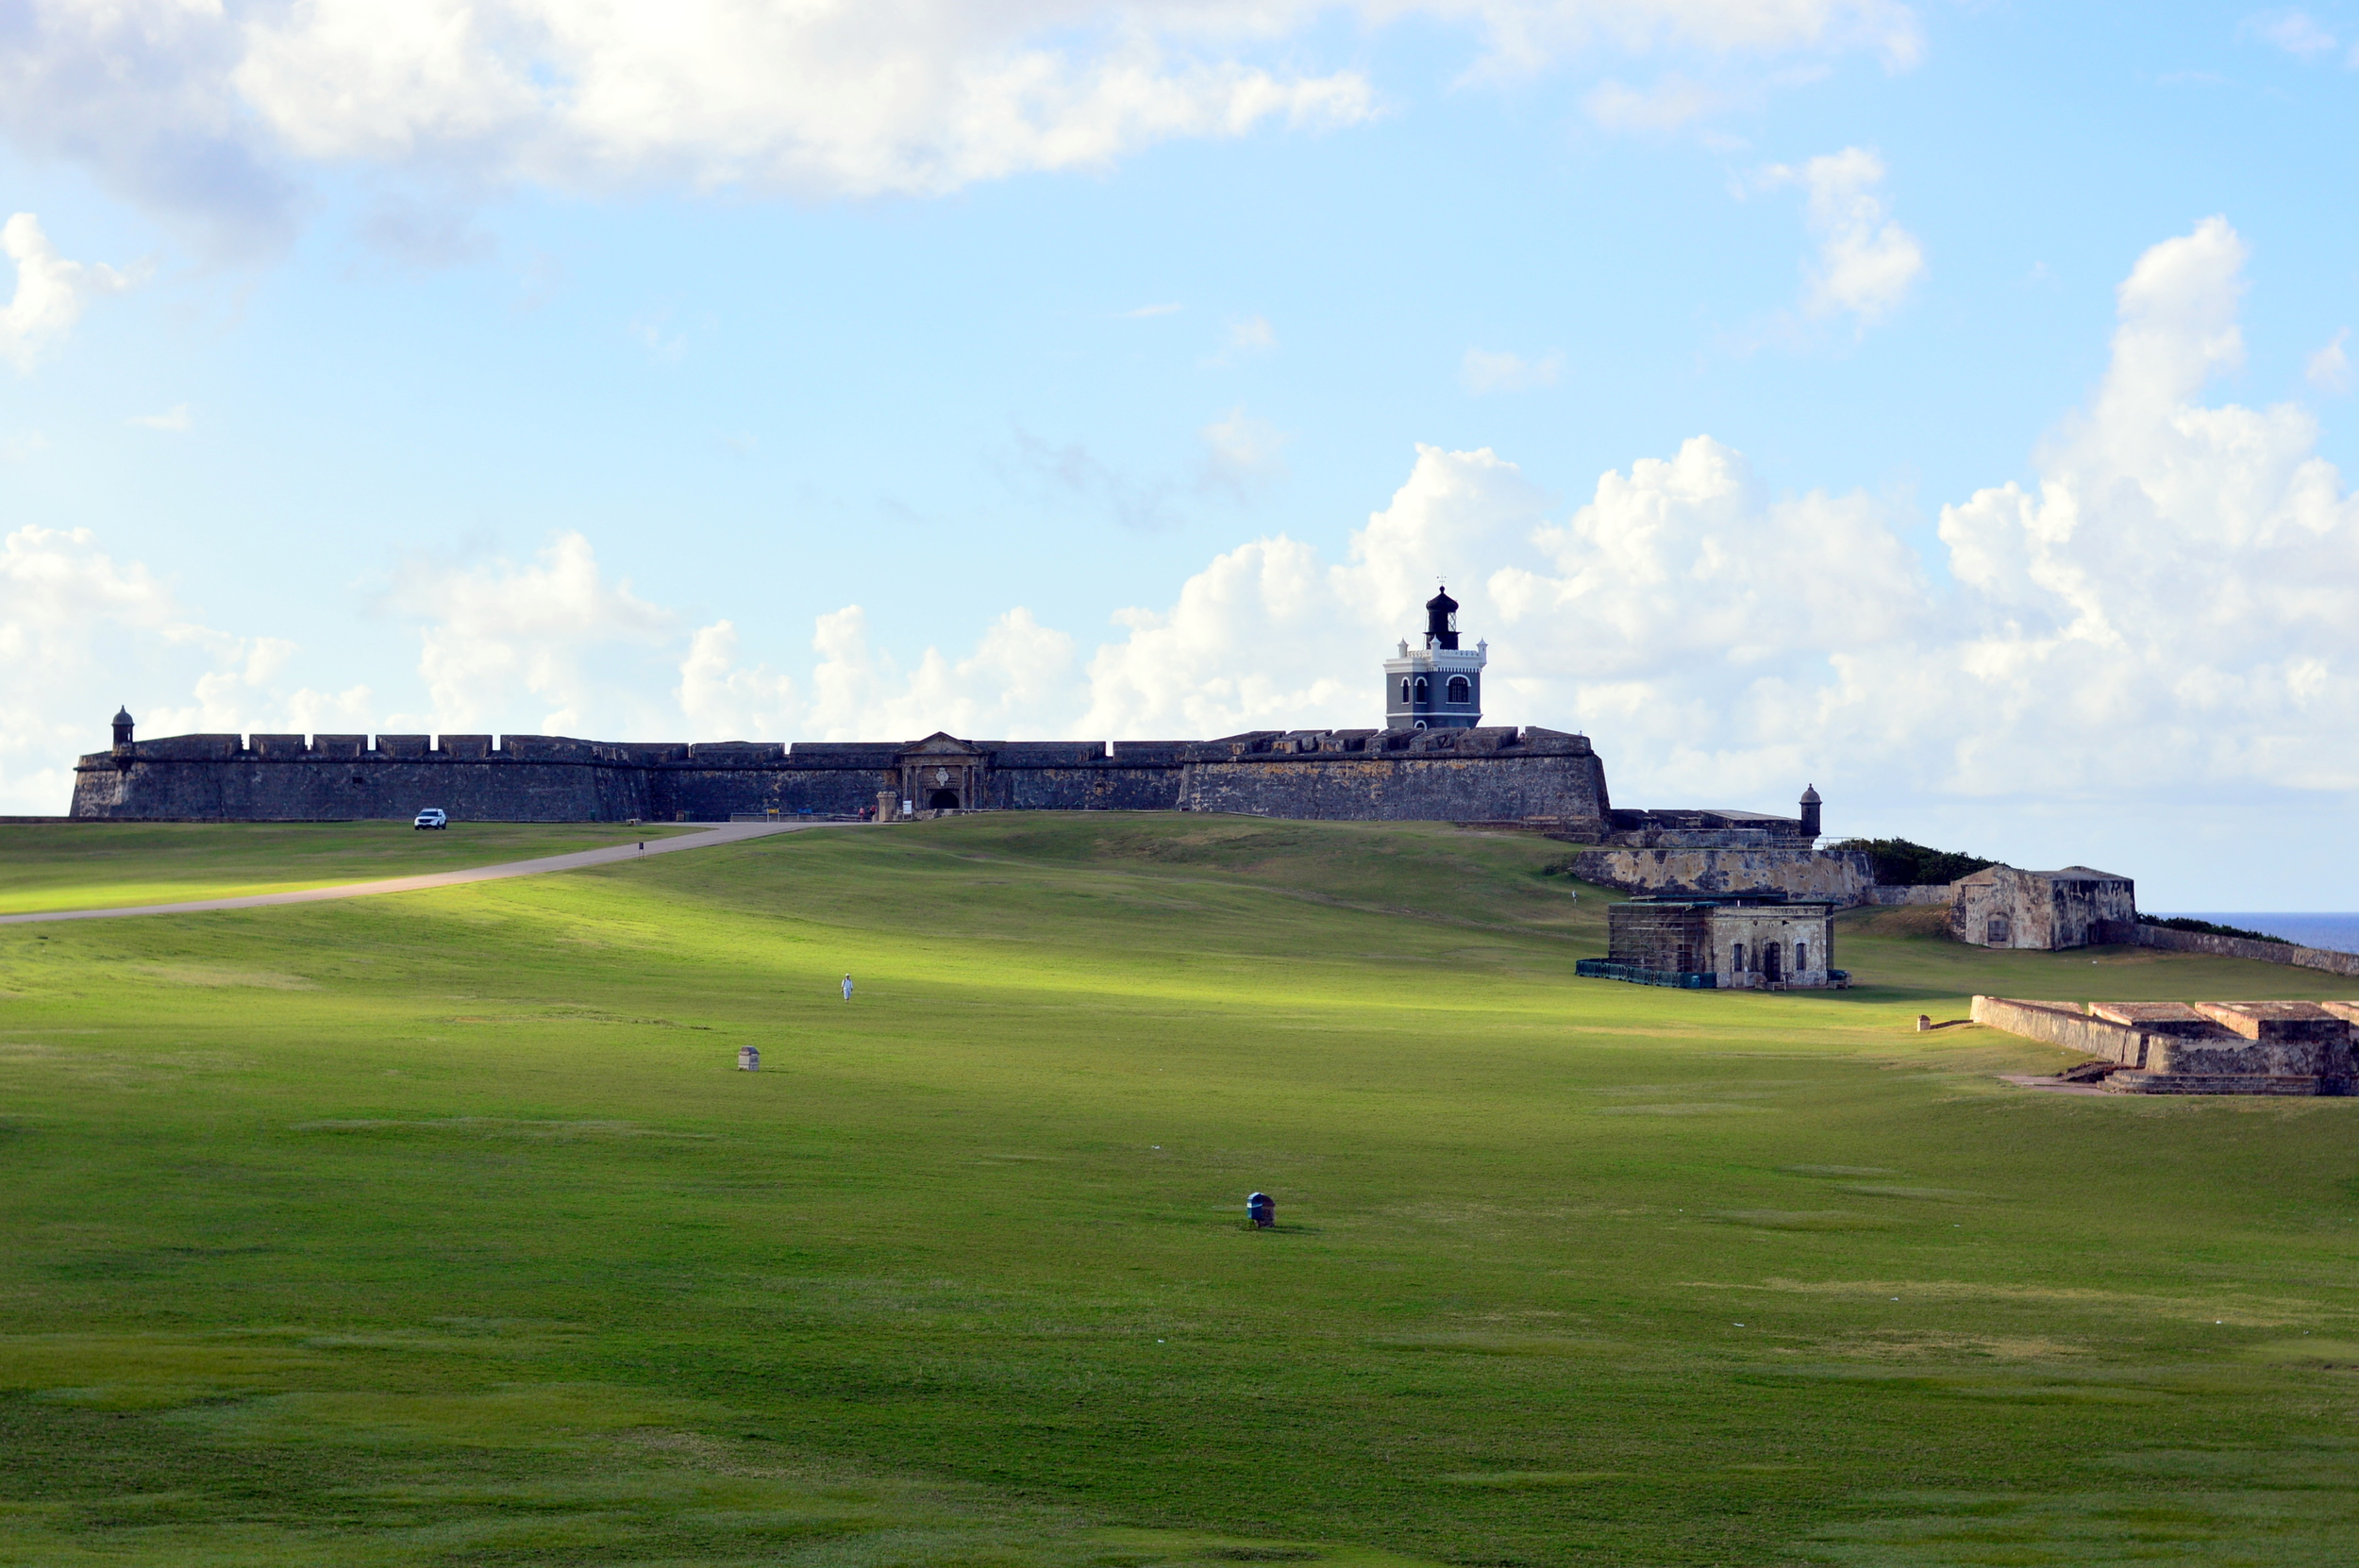 Castillo-del-morro-old-san-juan-travel-guide